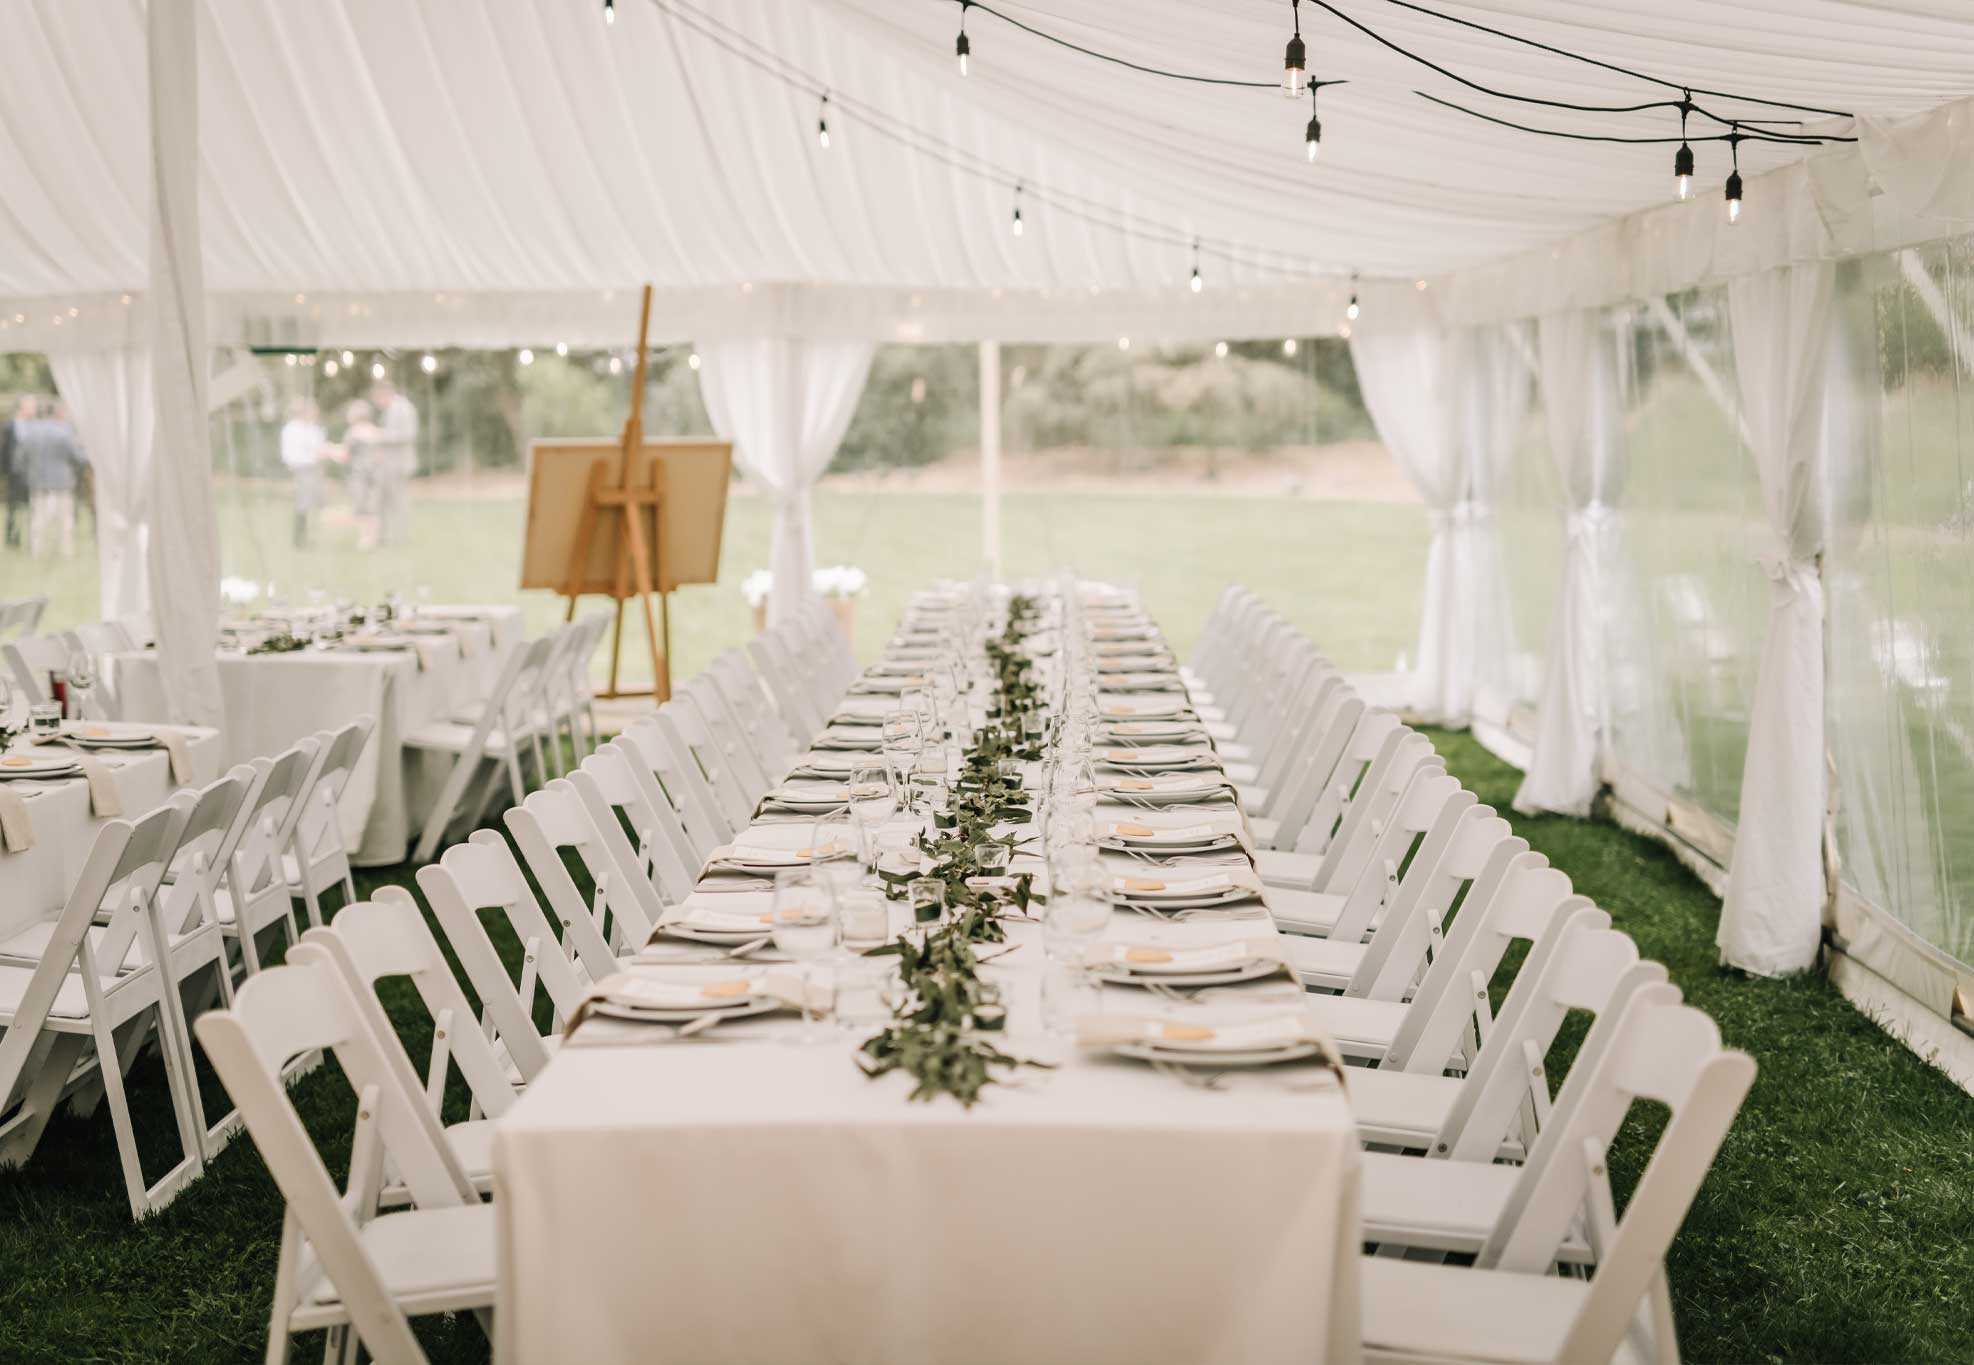 silk-estate-marquee-weddings-and-events-styling-and-hire-furniture-long-trestle-table-2